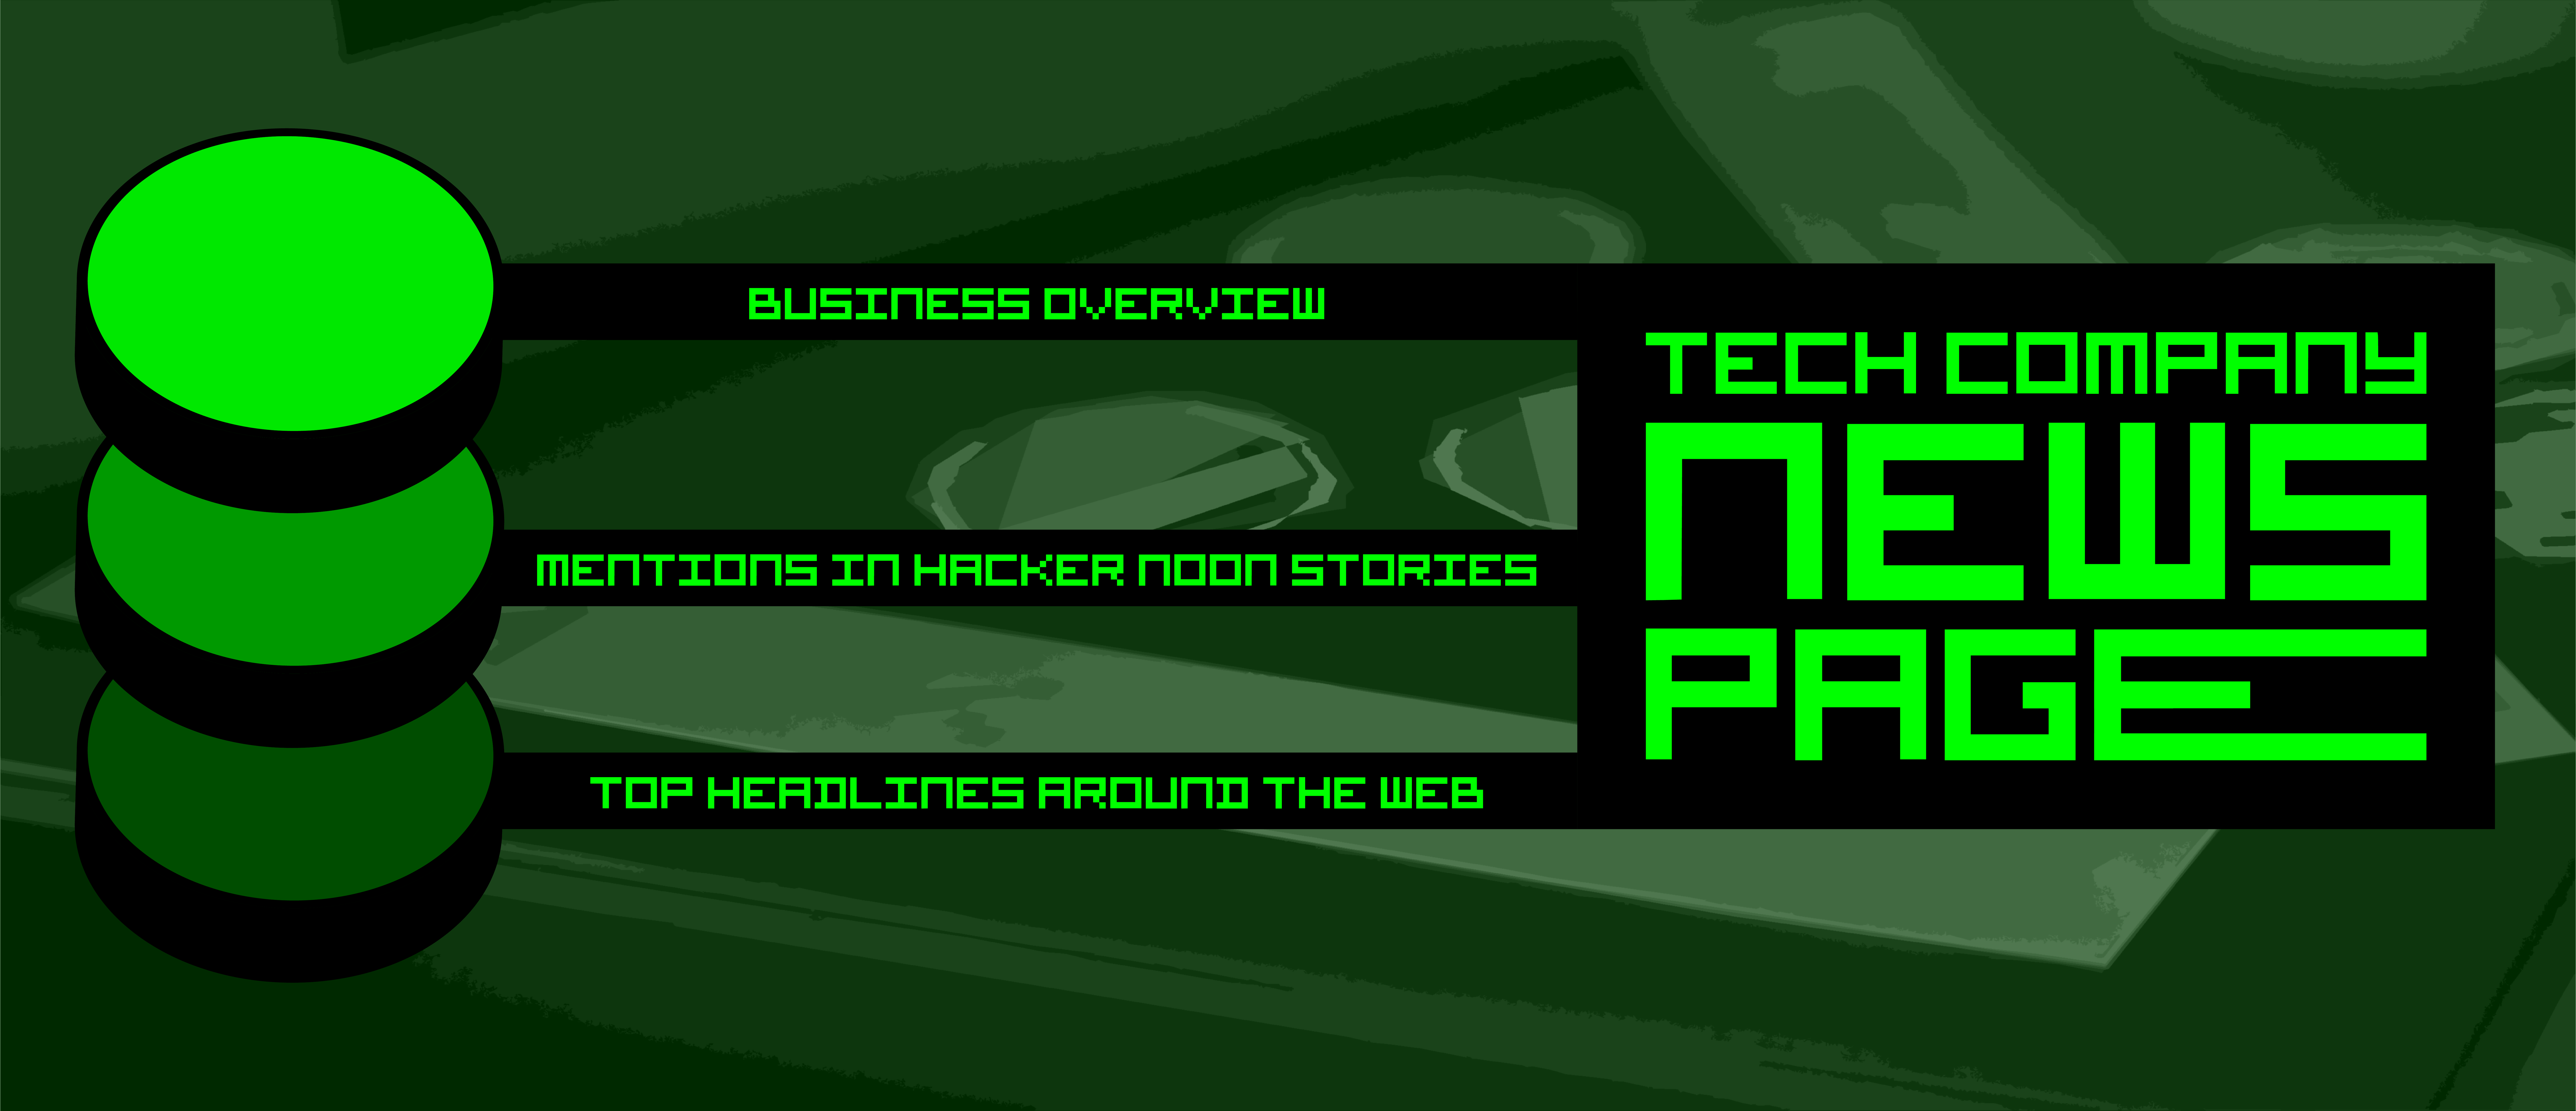 /new-feature-alert-913-tech-company-news-pages-on-hacker-noon-th1334q2 feature image